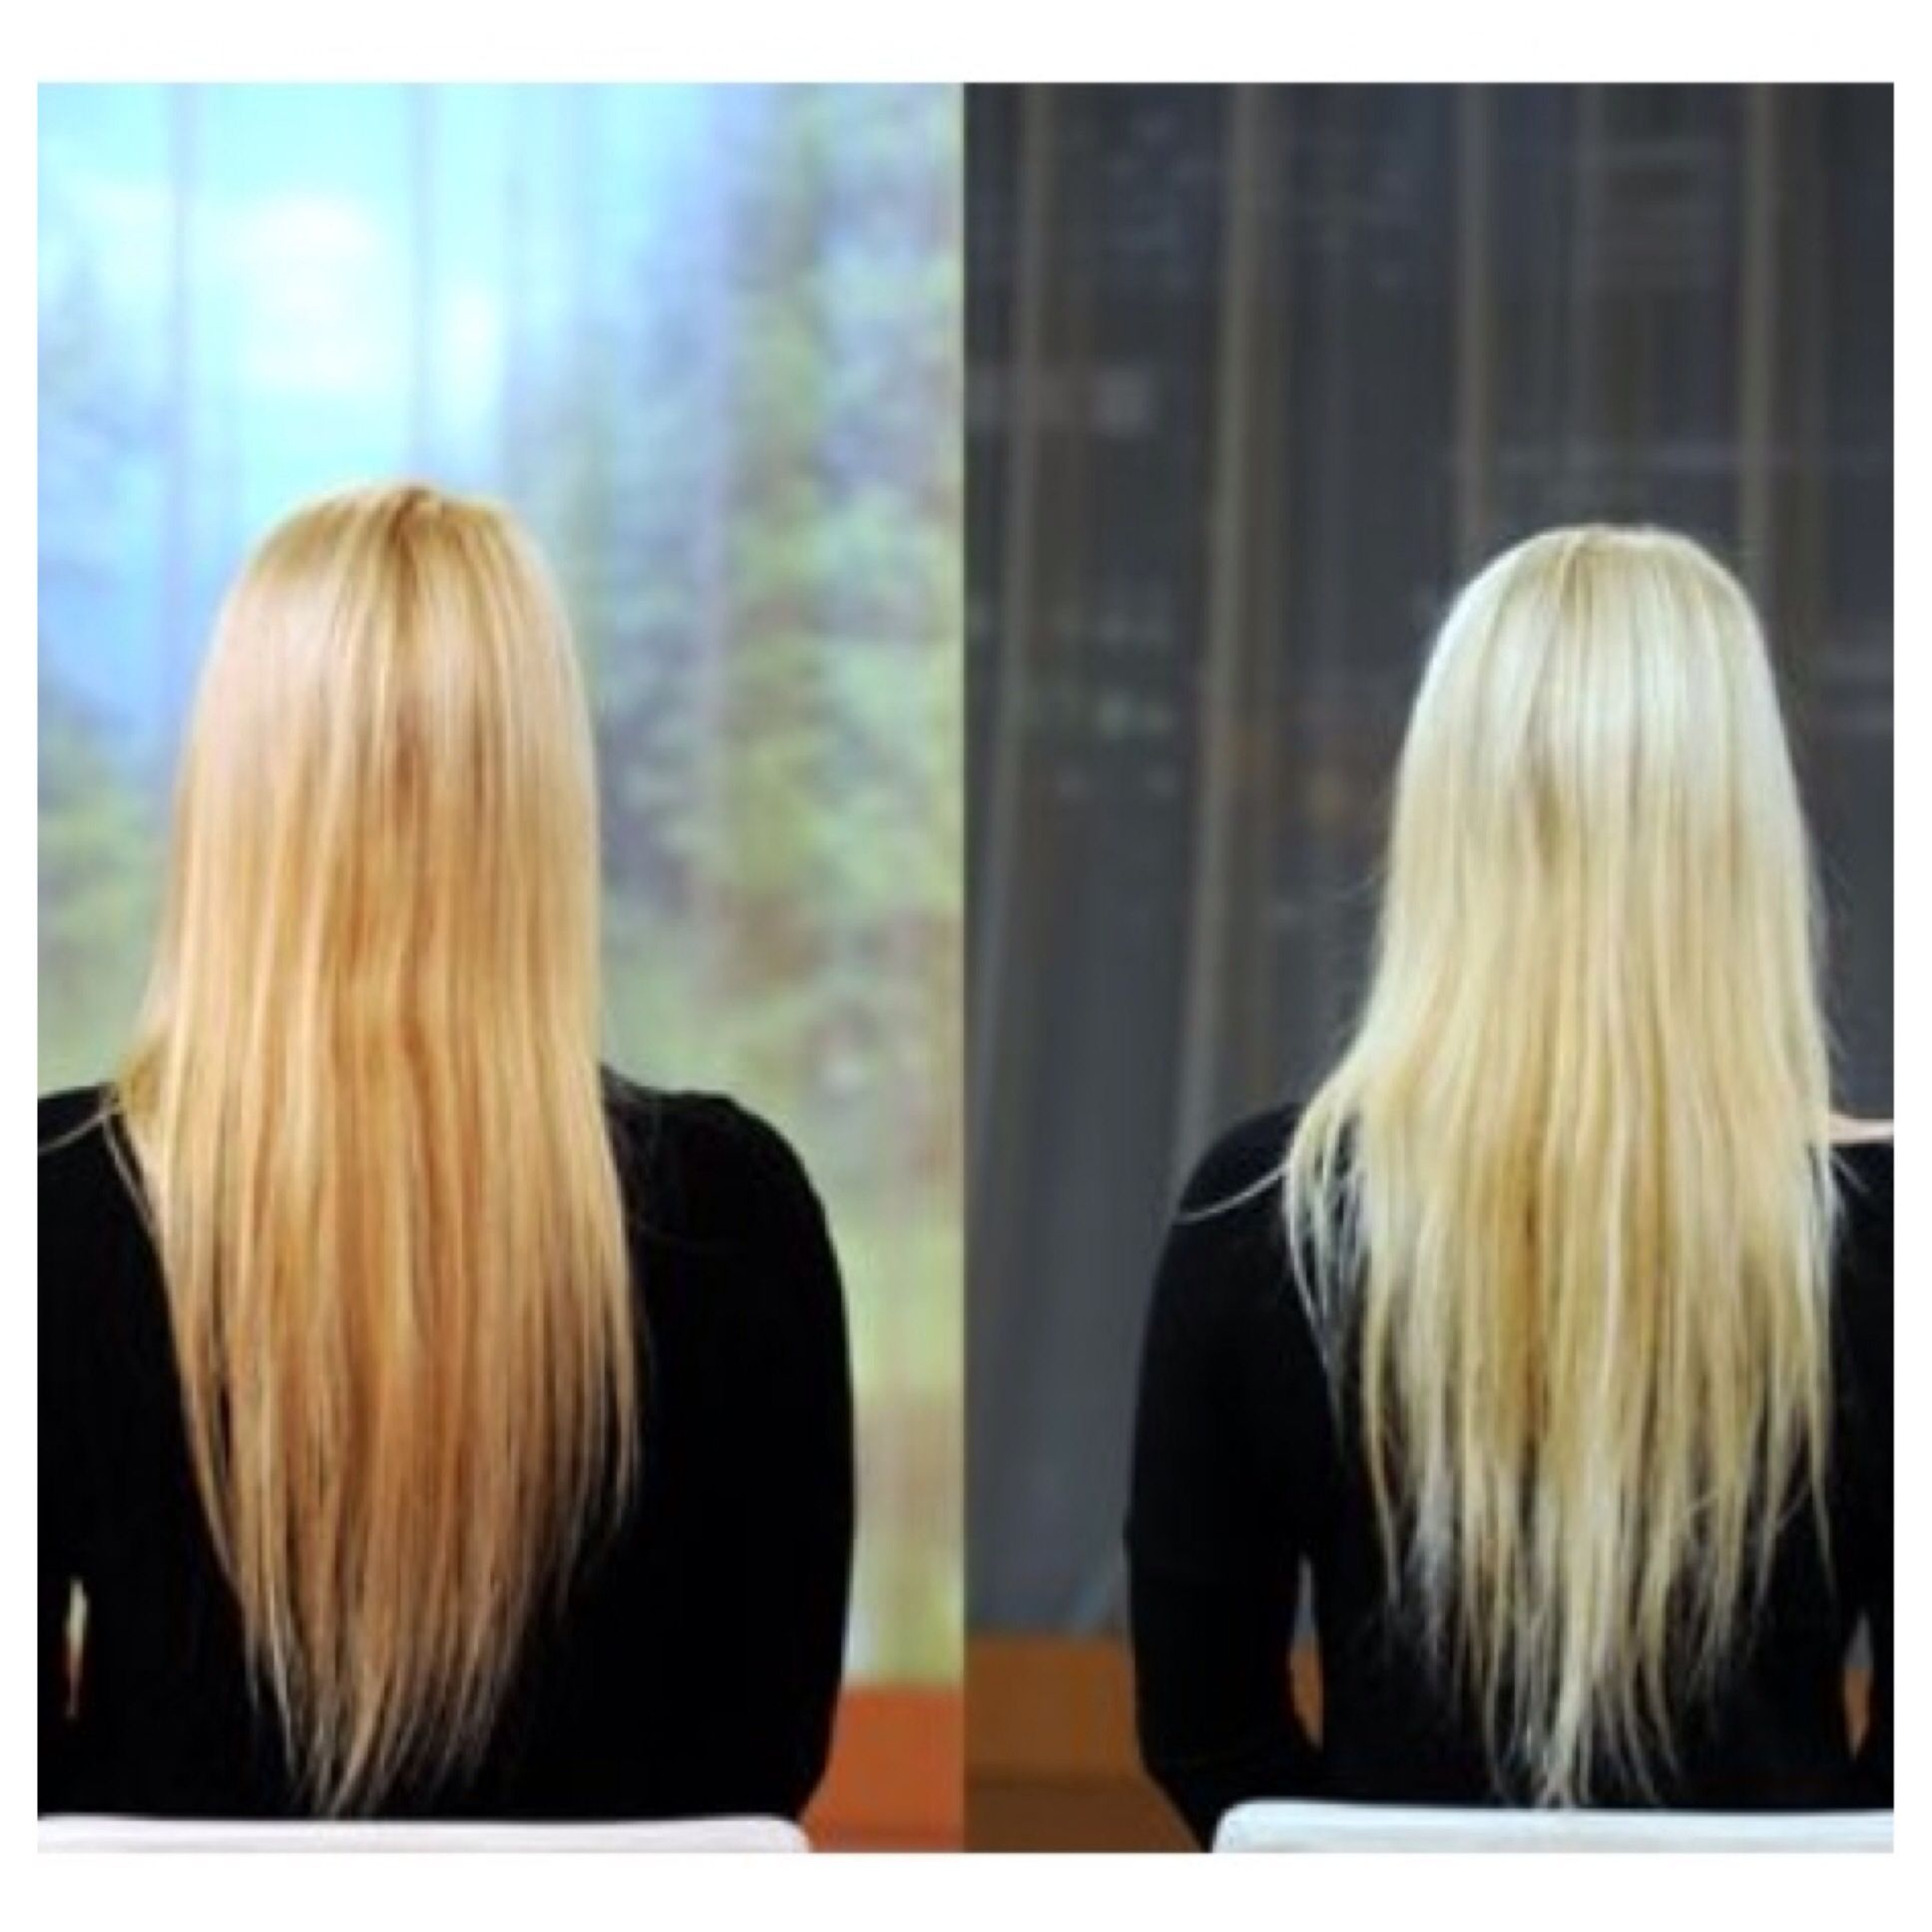 How To Create That Perfect Bleach Blonde Hair Home Remedy Mix 2